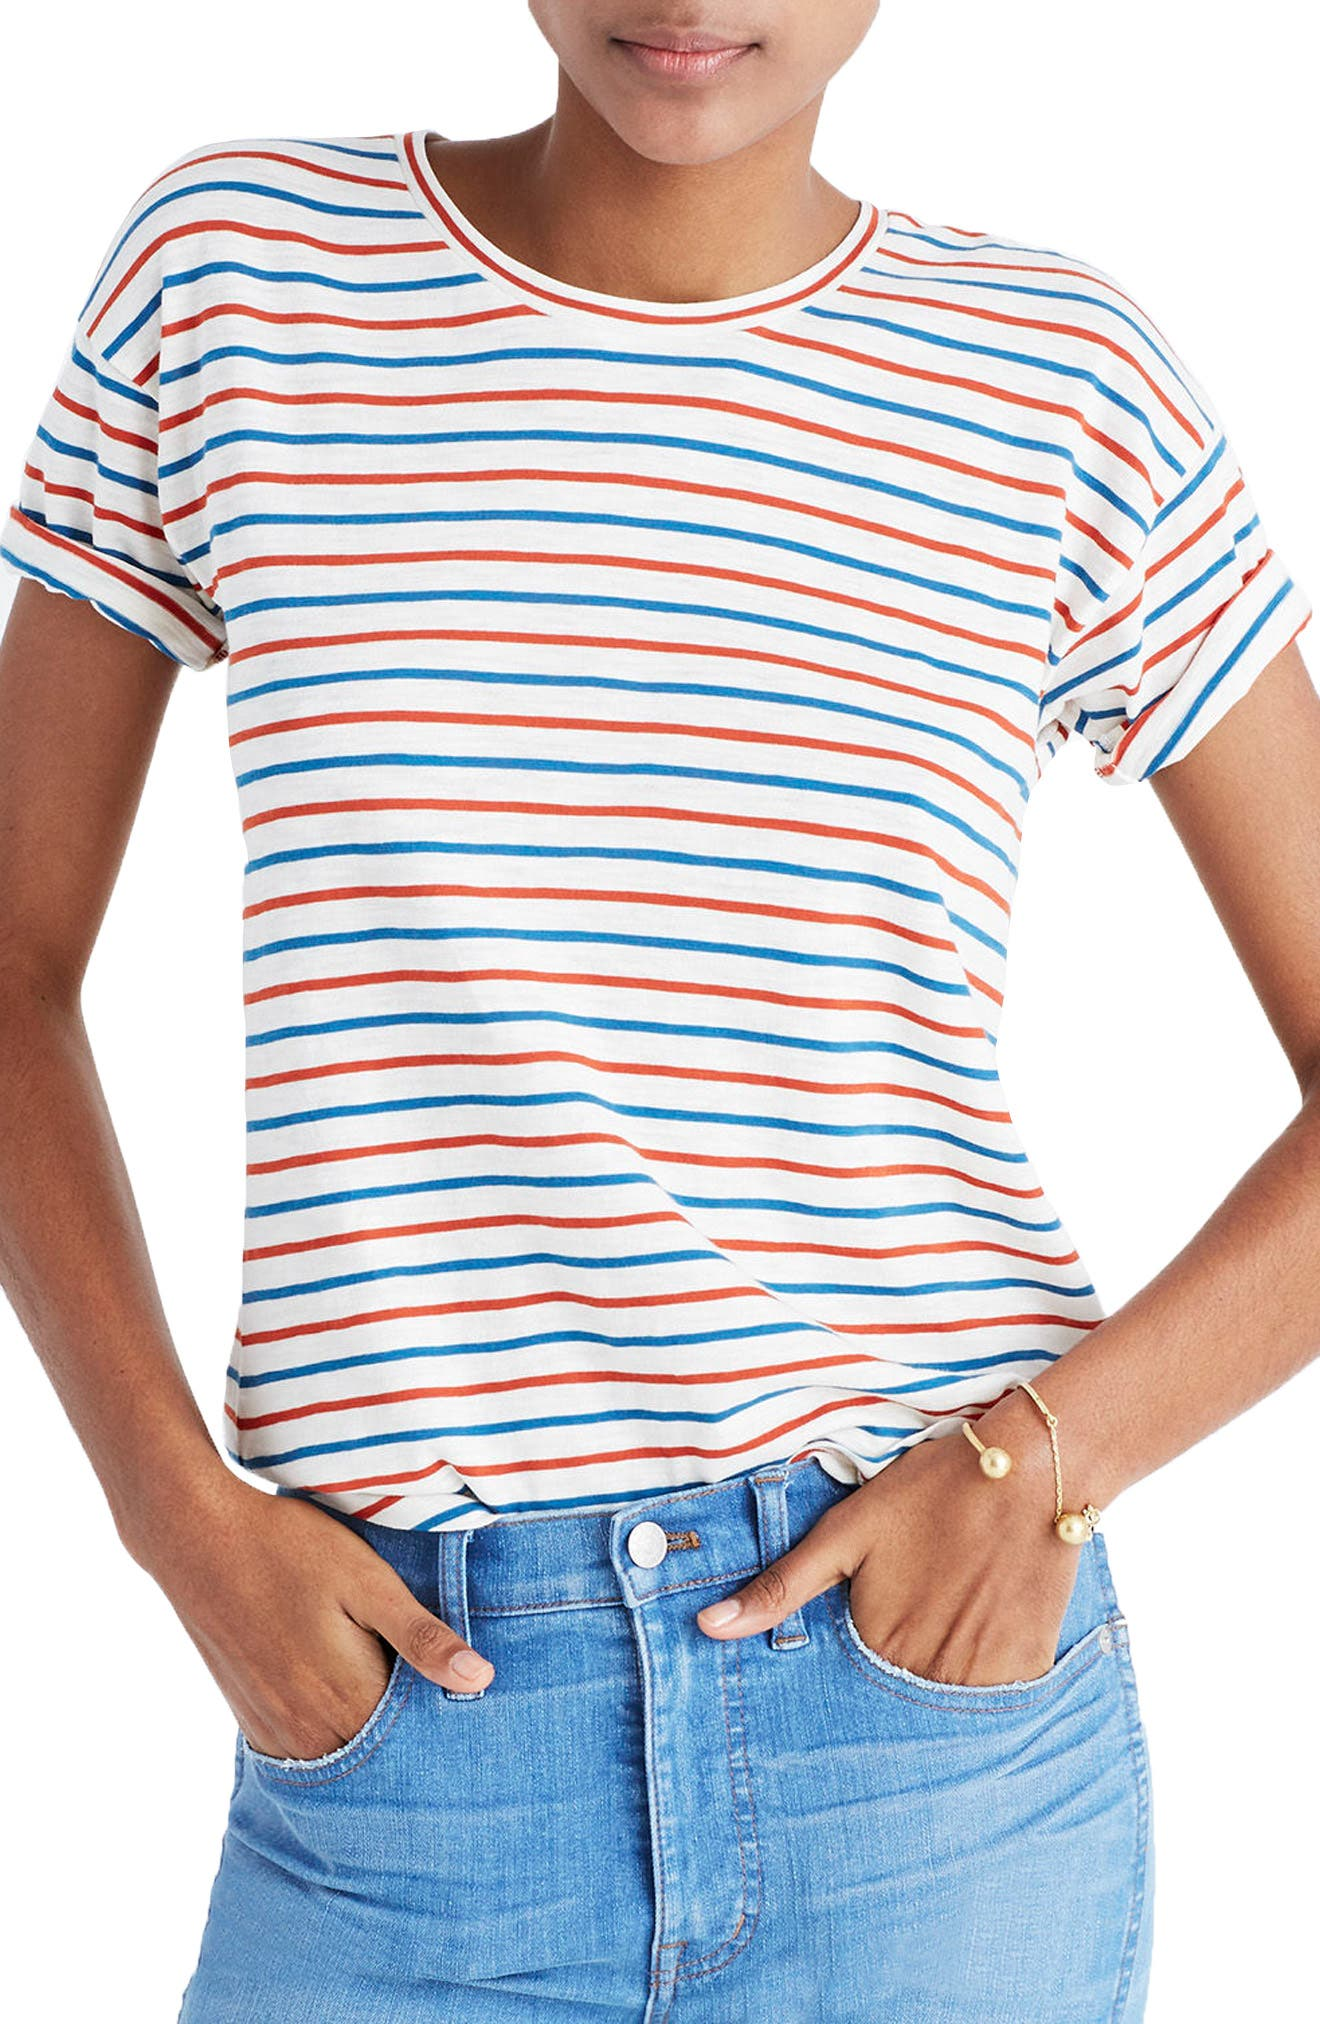 Whisper Cotton Stripe Crewneck Tee,                             Main thumbnail 1, color,                             900